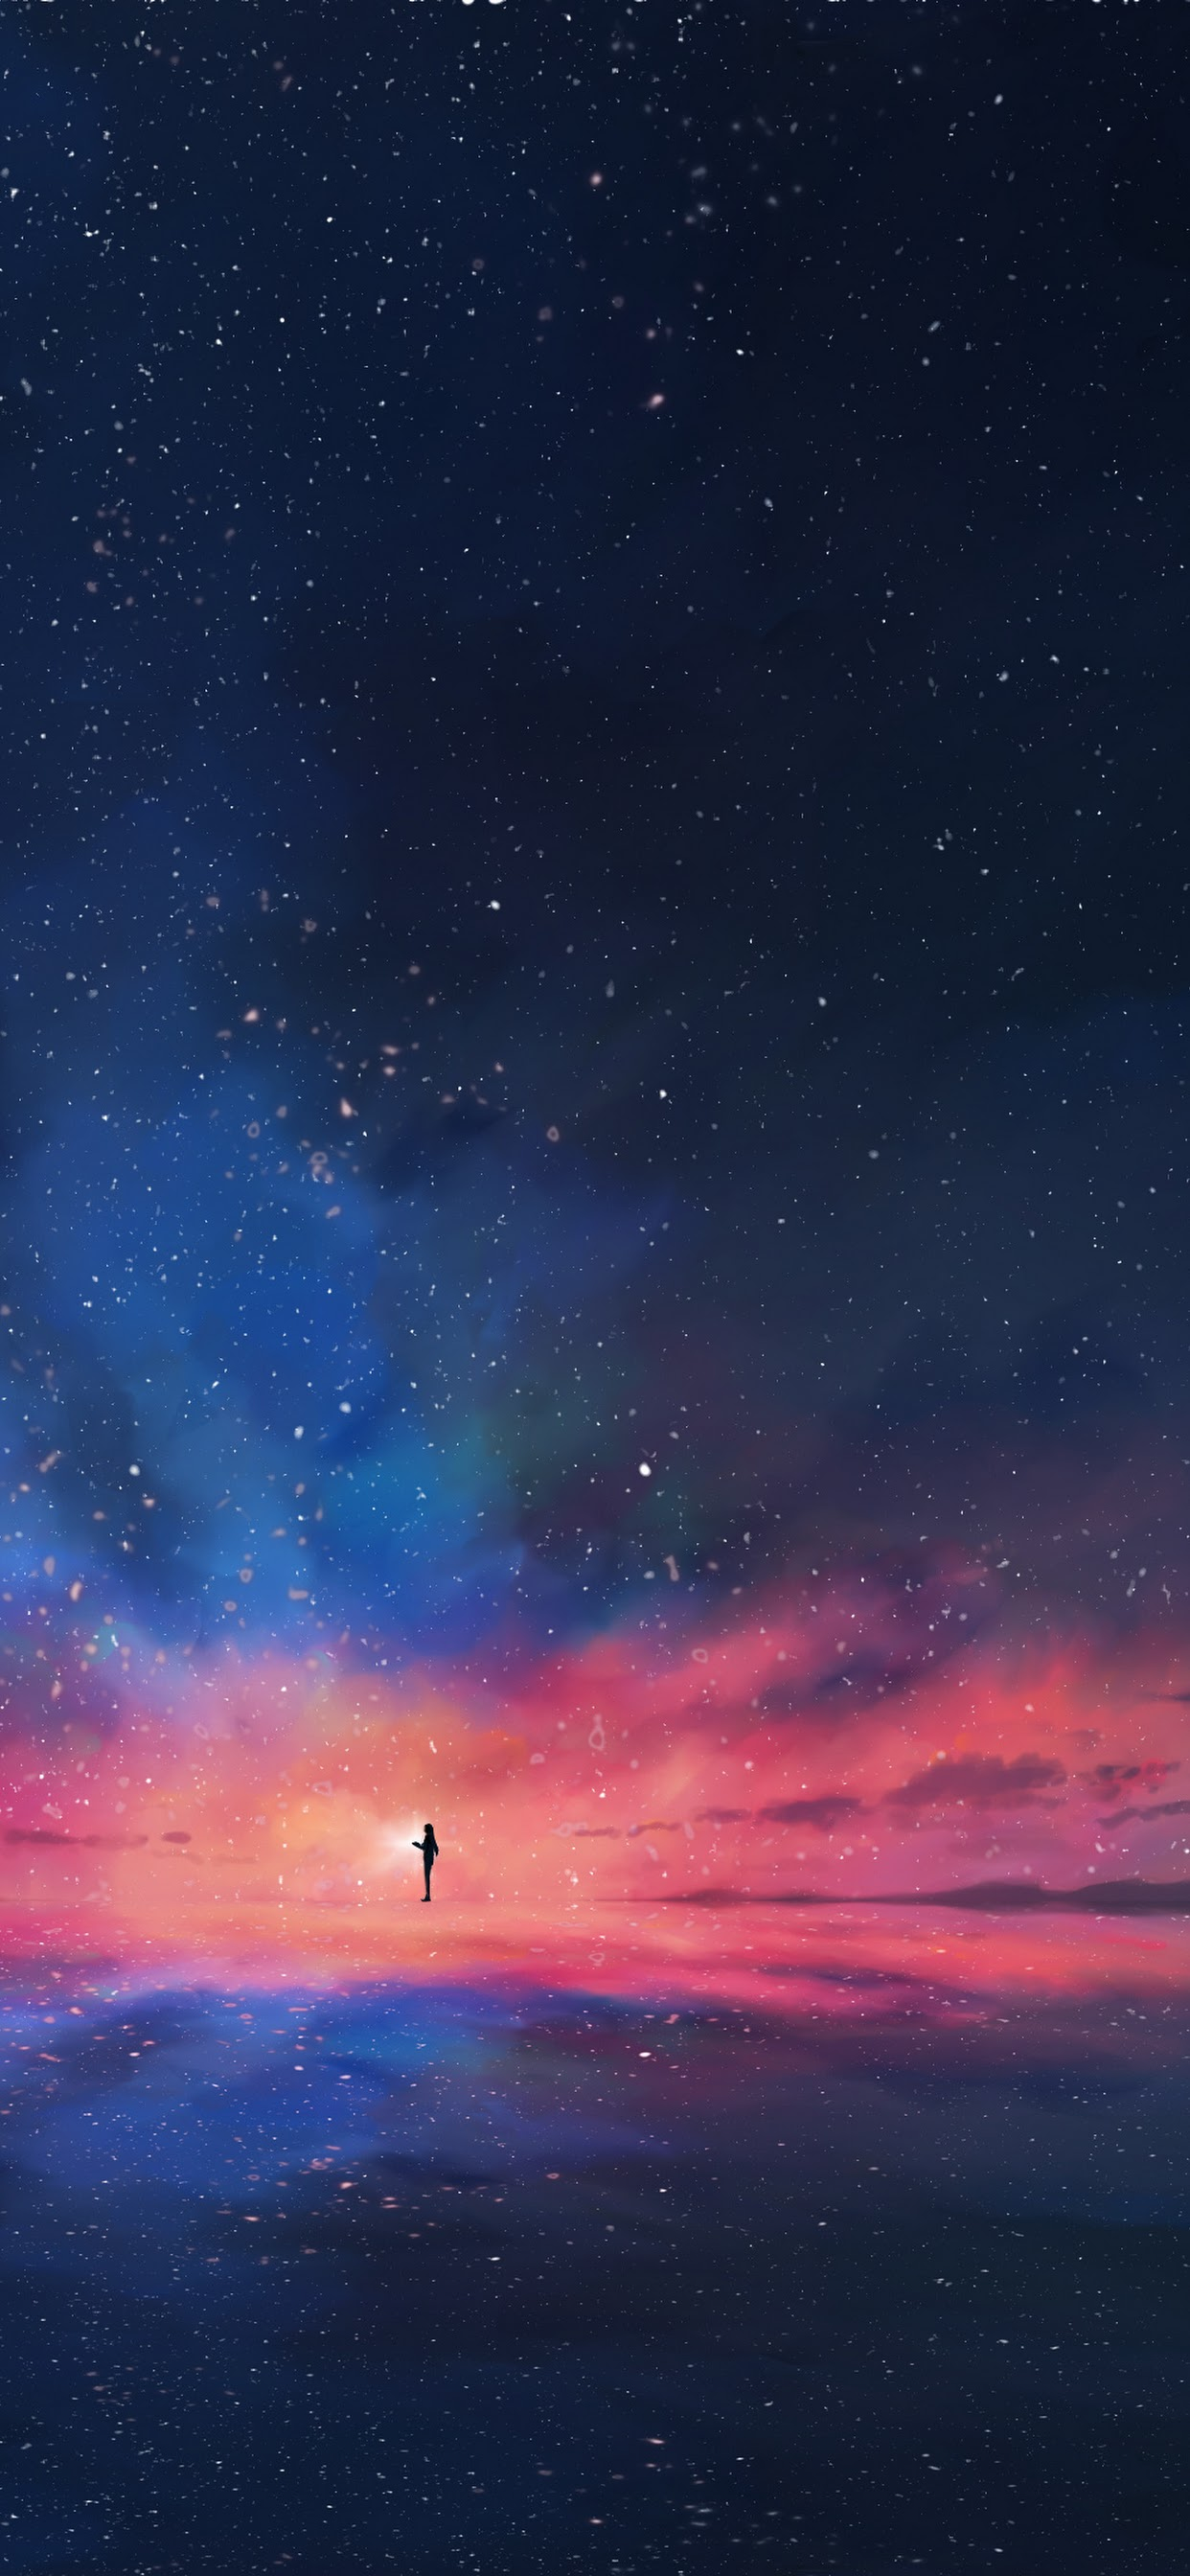 Anime Night Sky Stars Horizon Scenery 4k Wallpaper 92